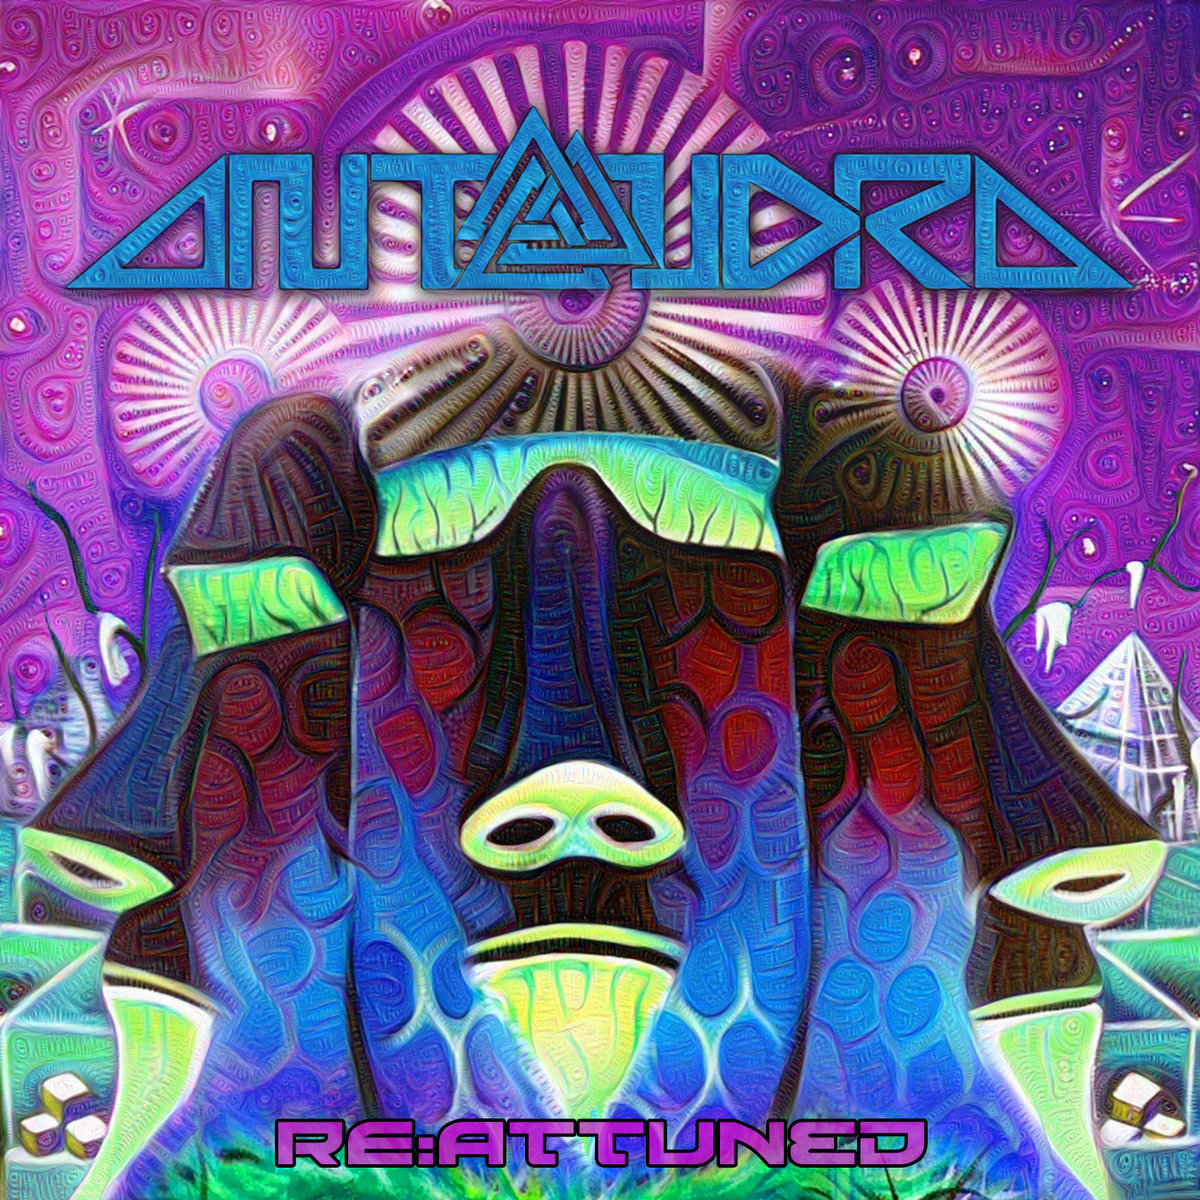 Antandra - Spectral Emission (White Robot Remix) @ 'RE:ATTUNED' album (ambient, downtempo)